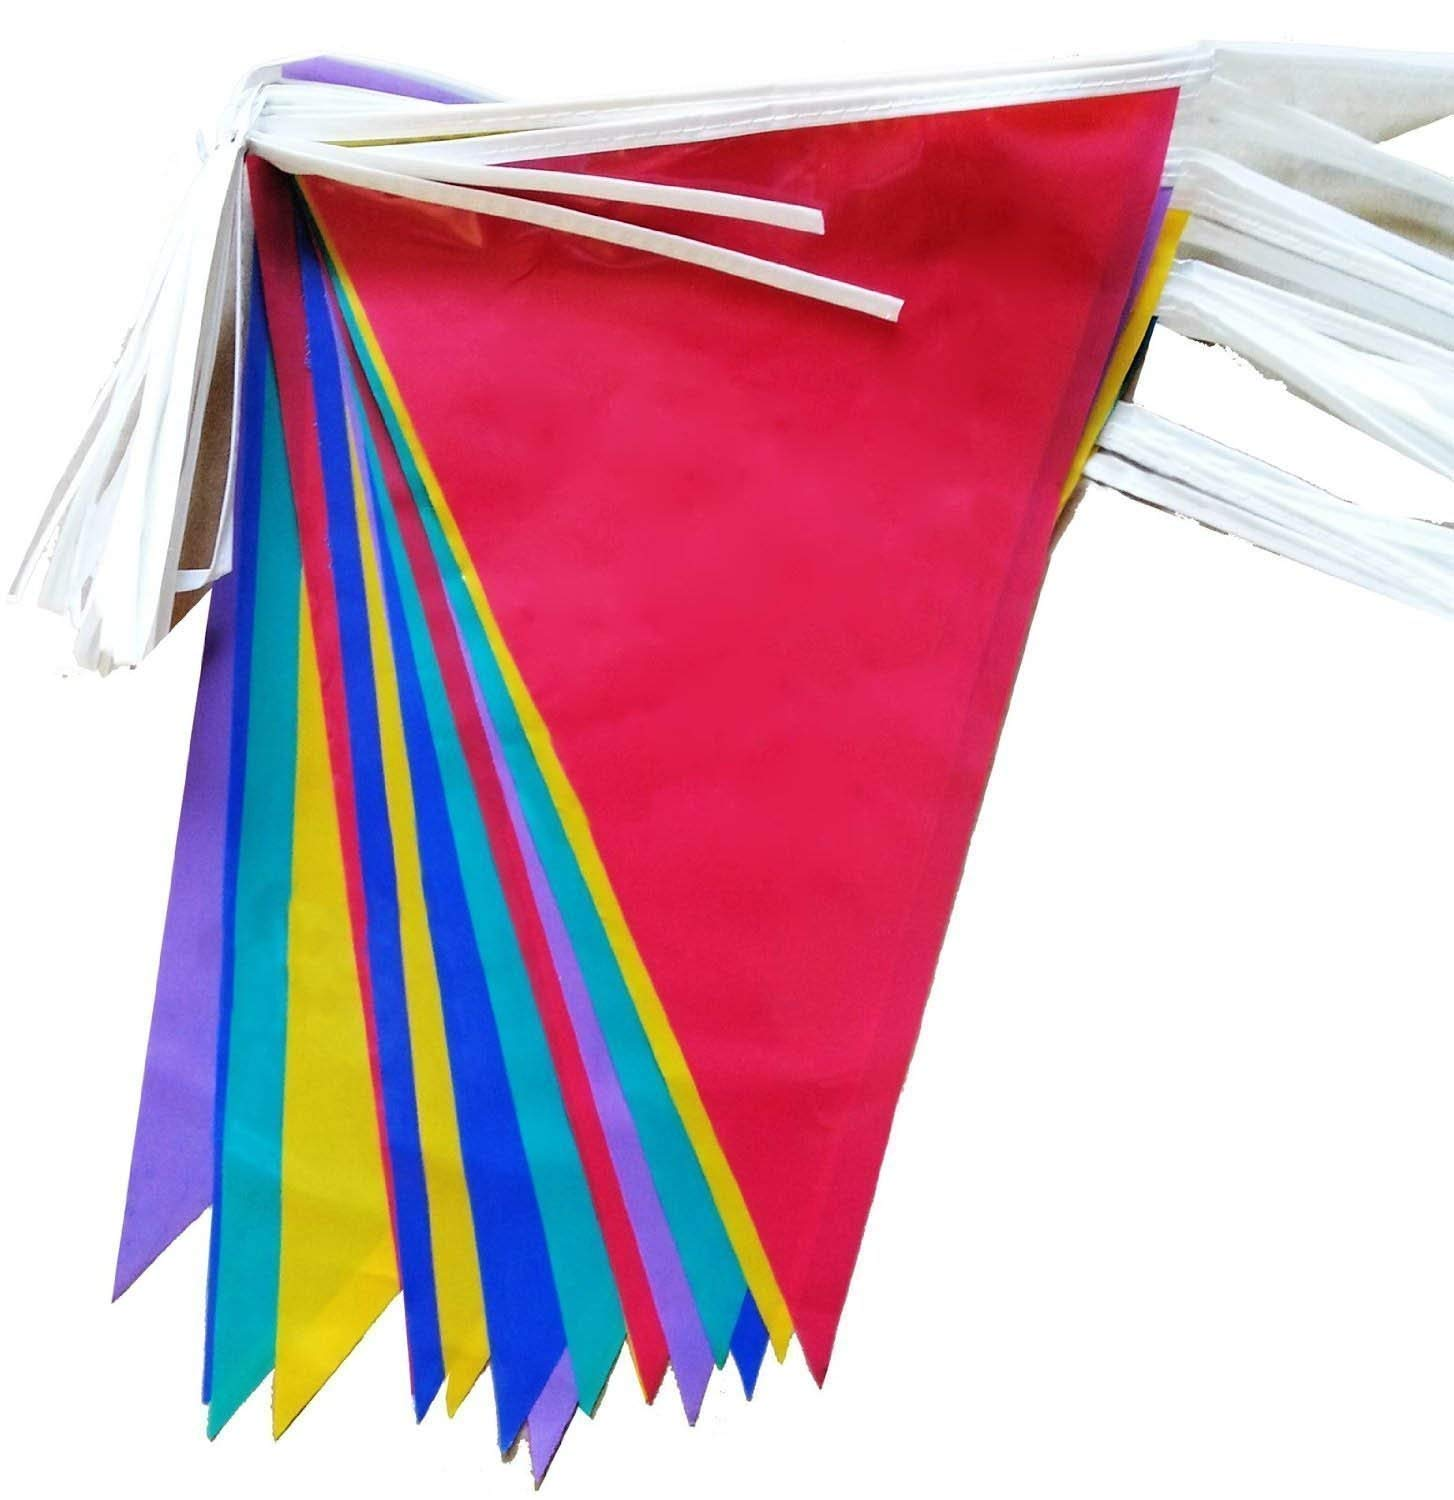 10-Metre PVC Double-Sided Bunting - 20 Flags Besto